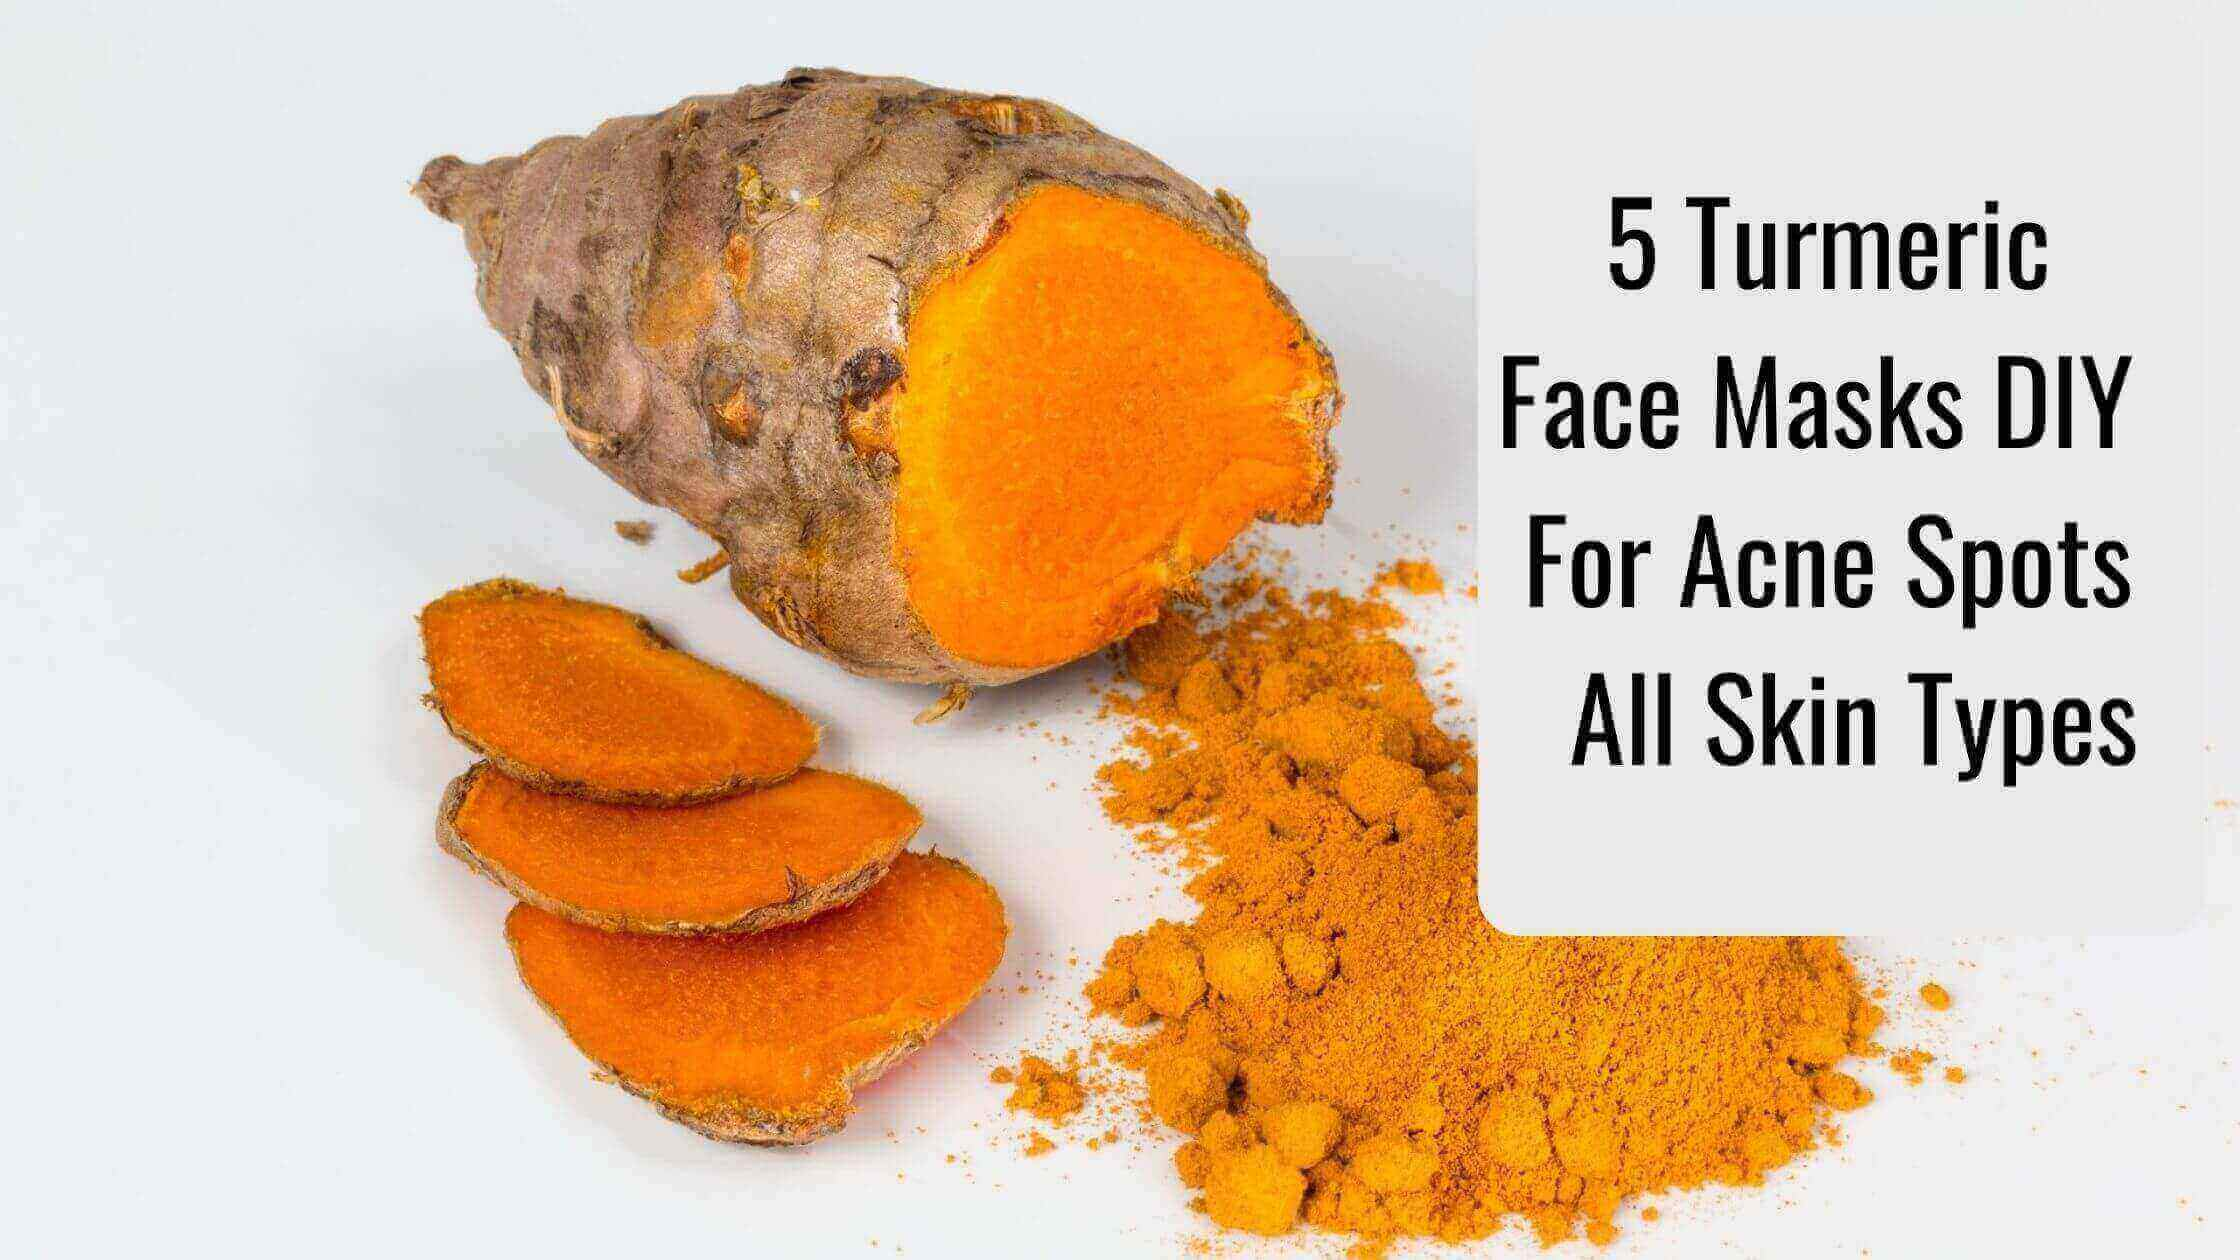 5 Turmeric Face Masks DIY  For Acne Spots|All Skin Types